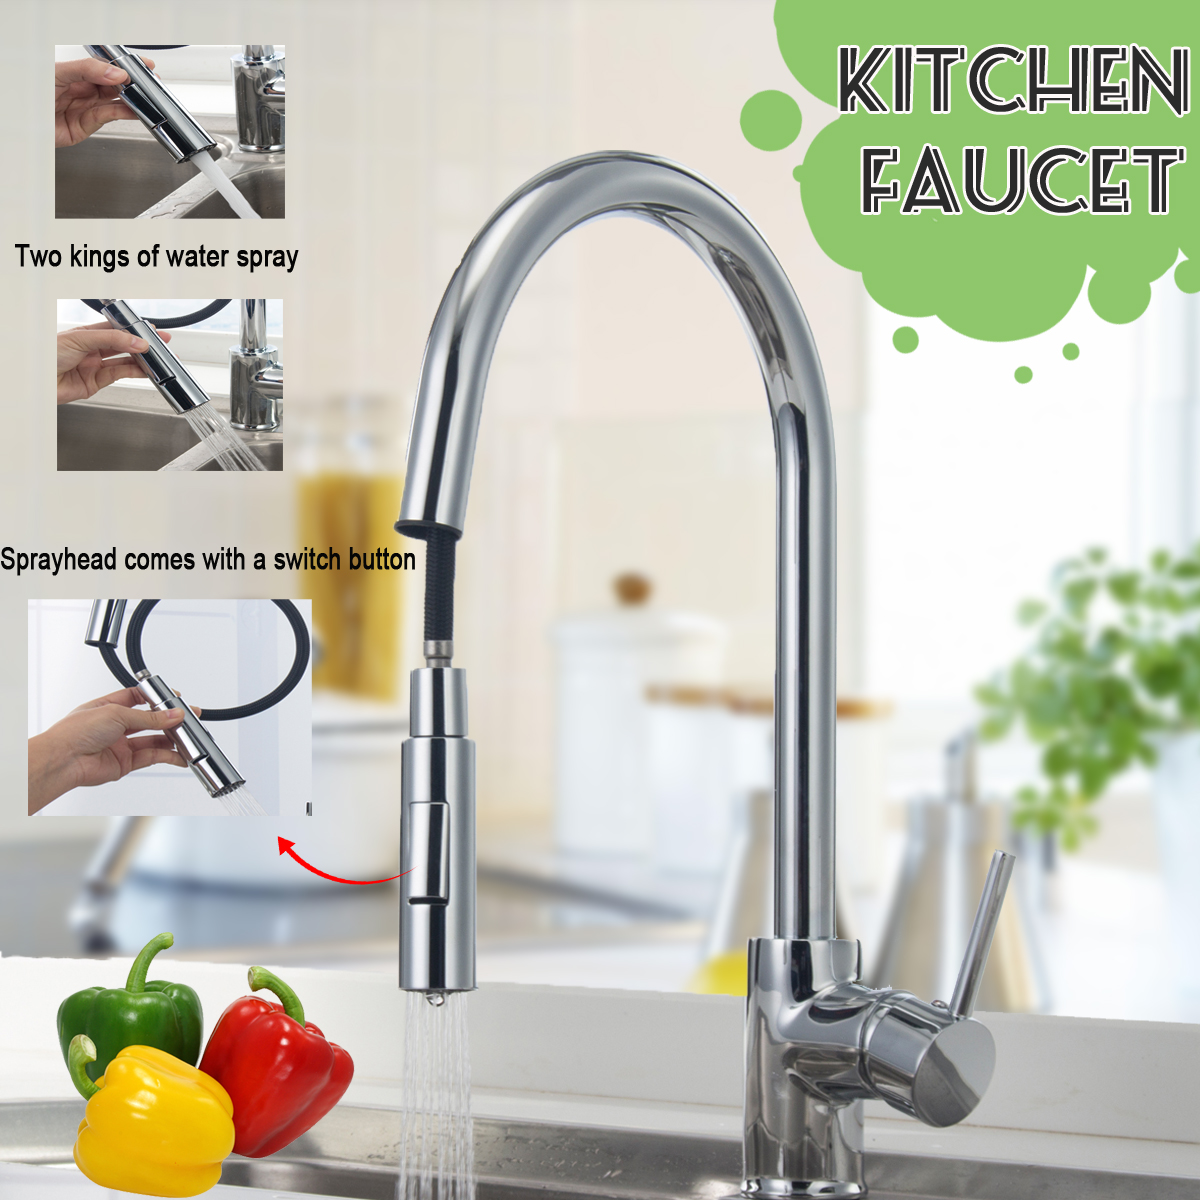 Xueqin Pull-out Sprayer Kitchen Faucet Single Handle Single Hole Kitchen Tap With Two Braided Hoses Mixer Tap Watermark&WelsXueqin Pull-out Sprayer Kitchen Faucet Single Handle Single Hole Kitchen Tap With Two Braided Hoses Mixer Tap Watermark&Wels